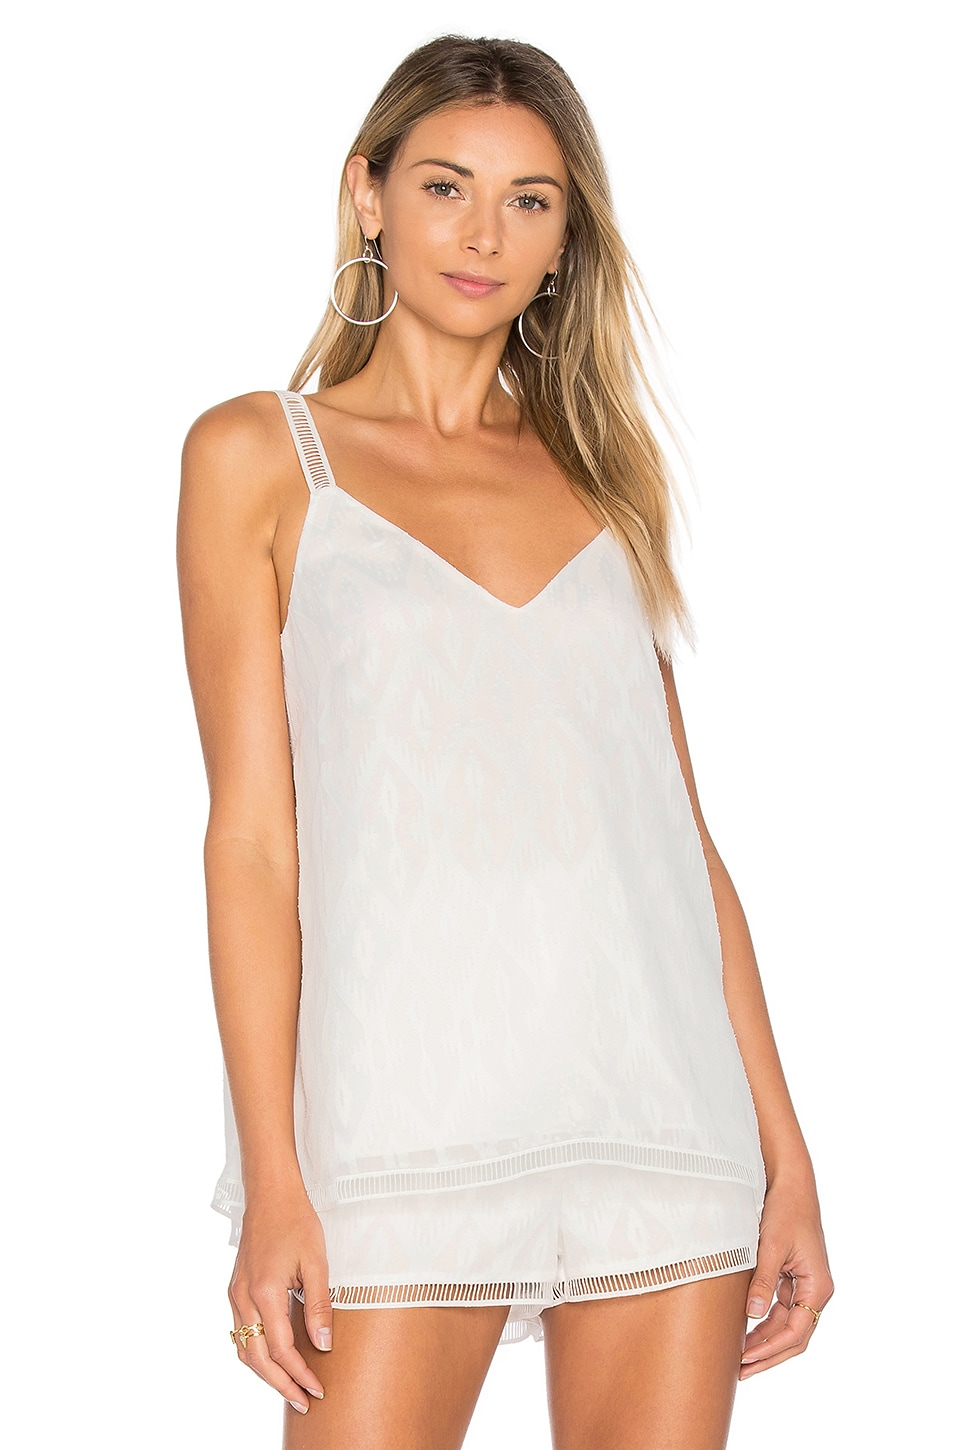 Colette Tank by Charli